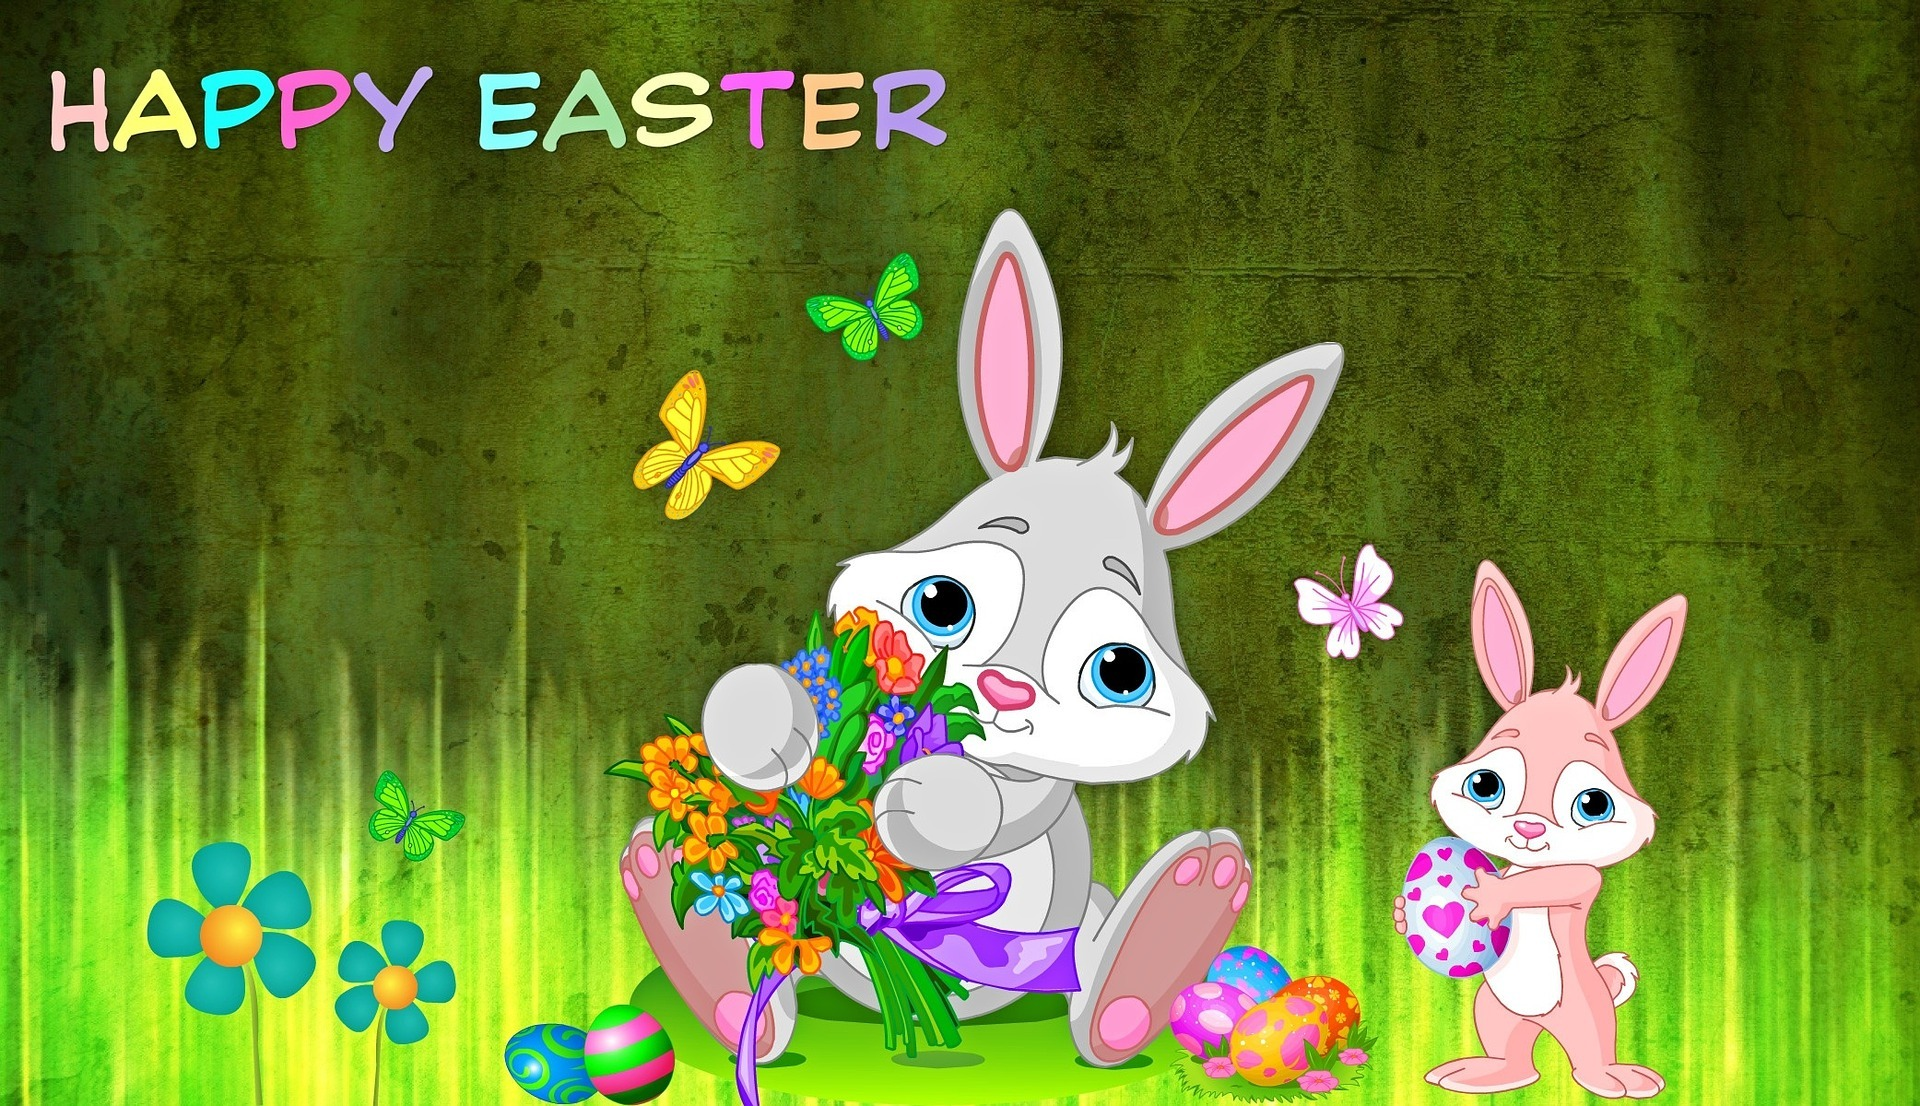 Easter greeting with cartoon character